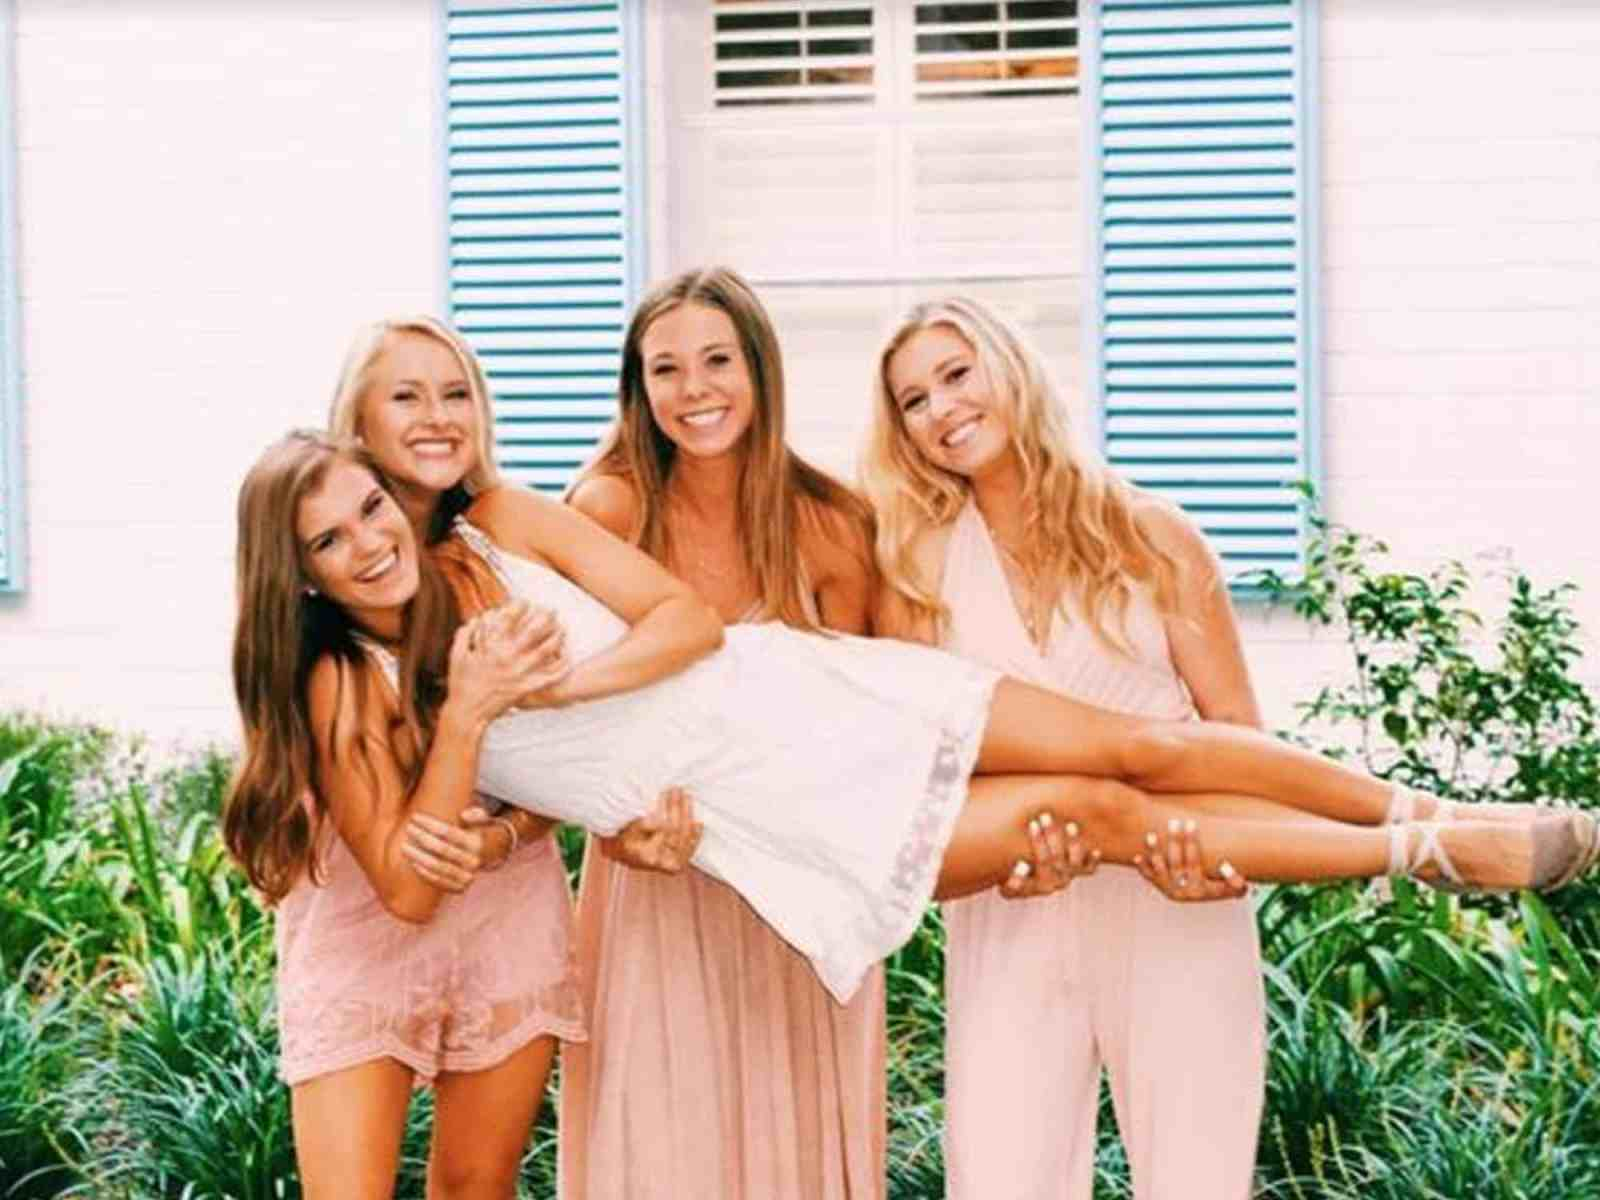 Overwhelmed by the thought of recruitment? Here's some advice from UF sorority women on what you should know going into the crazy week.